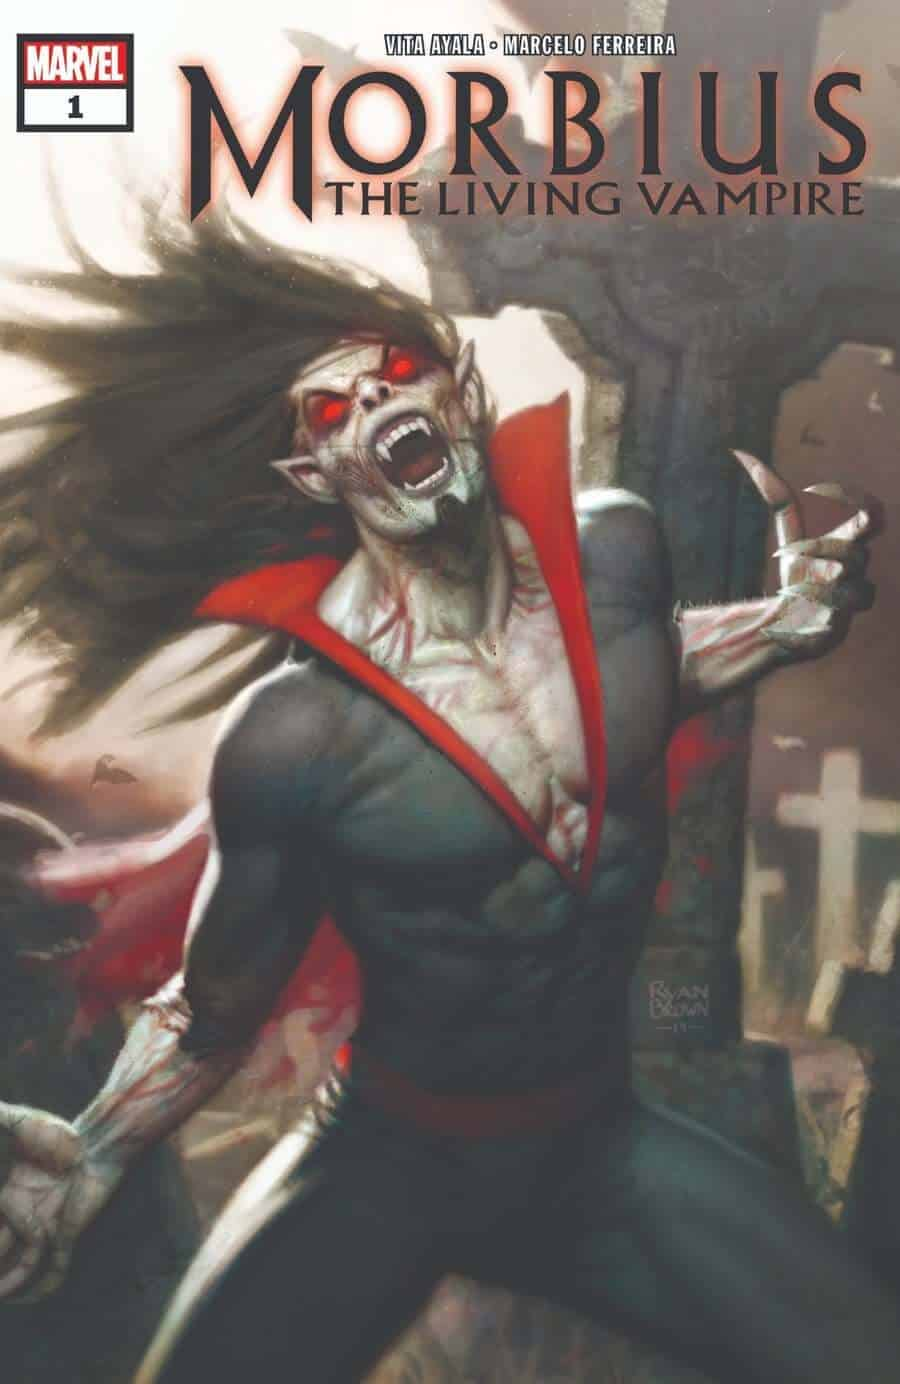 morbius the living vampire marvel comic cover 1 - New MORBIUS THE LIVING VAMPIRE Comic Series Announced By Marvel